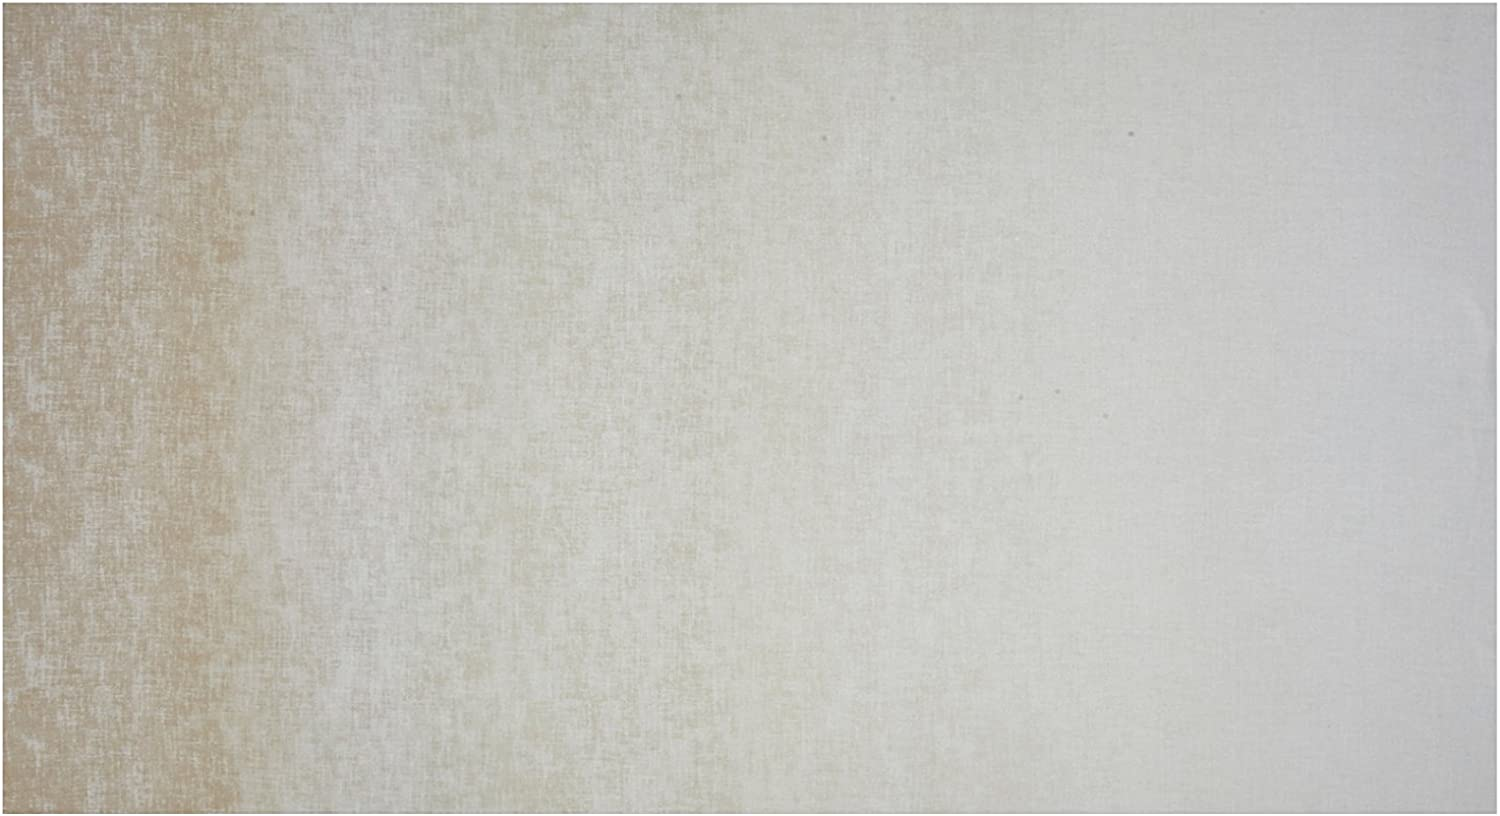 Studio Ombre Smoke Gray Blender From Timeless Treasures Fabric You Choose the Cut